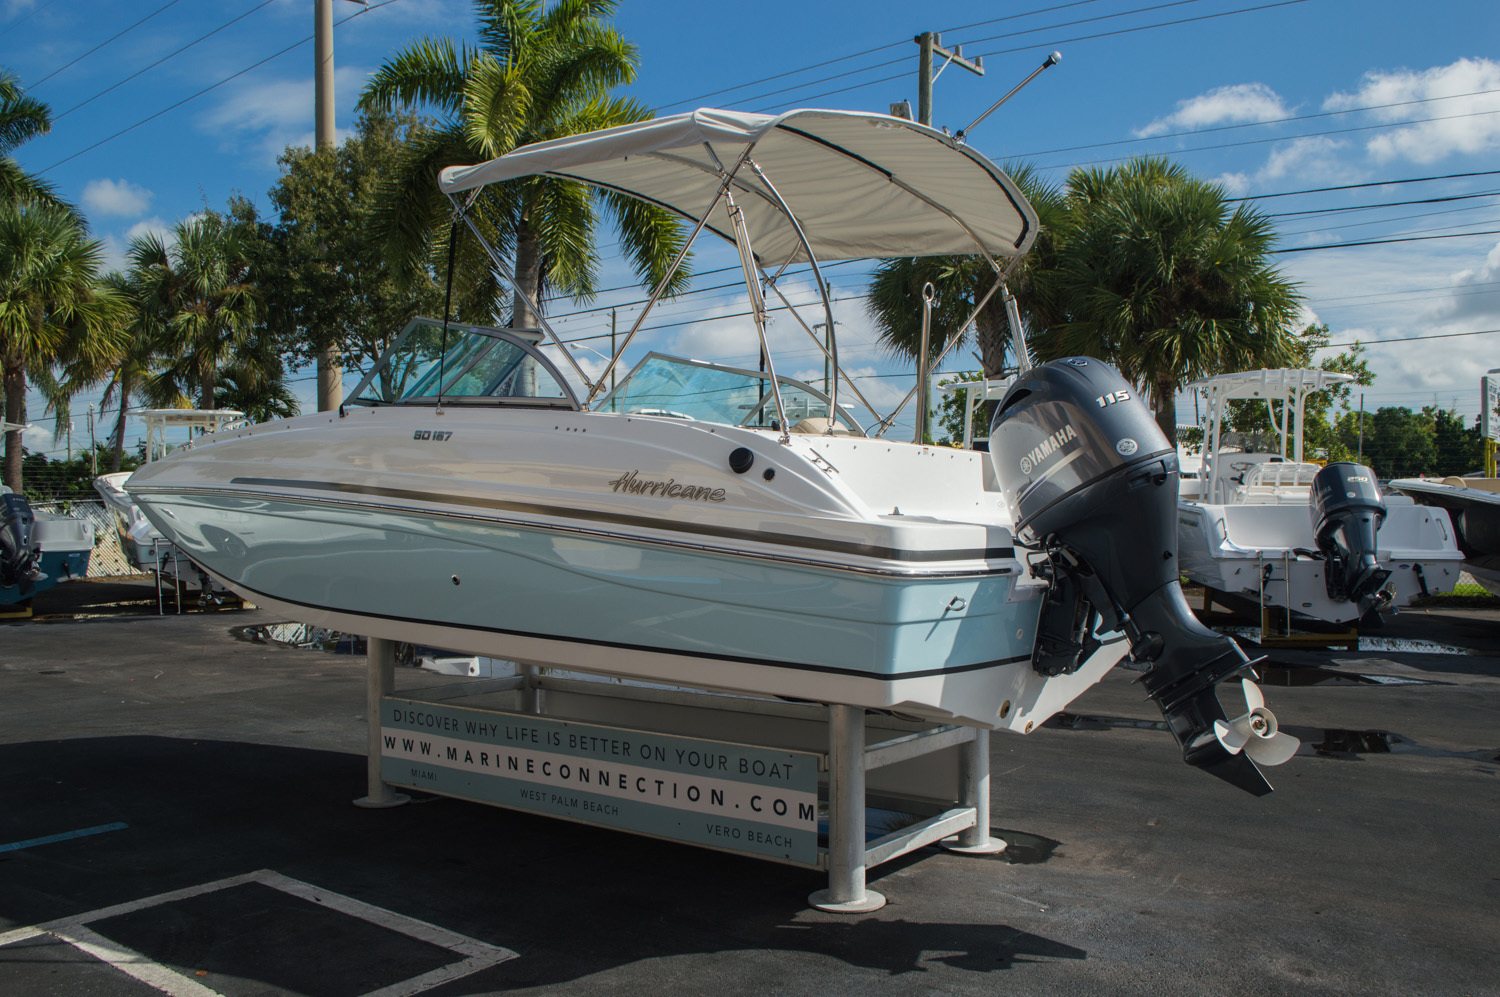 Thumbnail 5 for New 2016 Hurricane SunDeck SD 187 OB boat for sale in West Palm Beach, FL